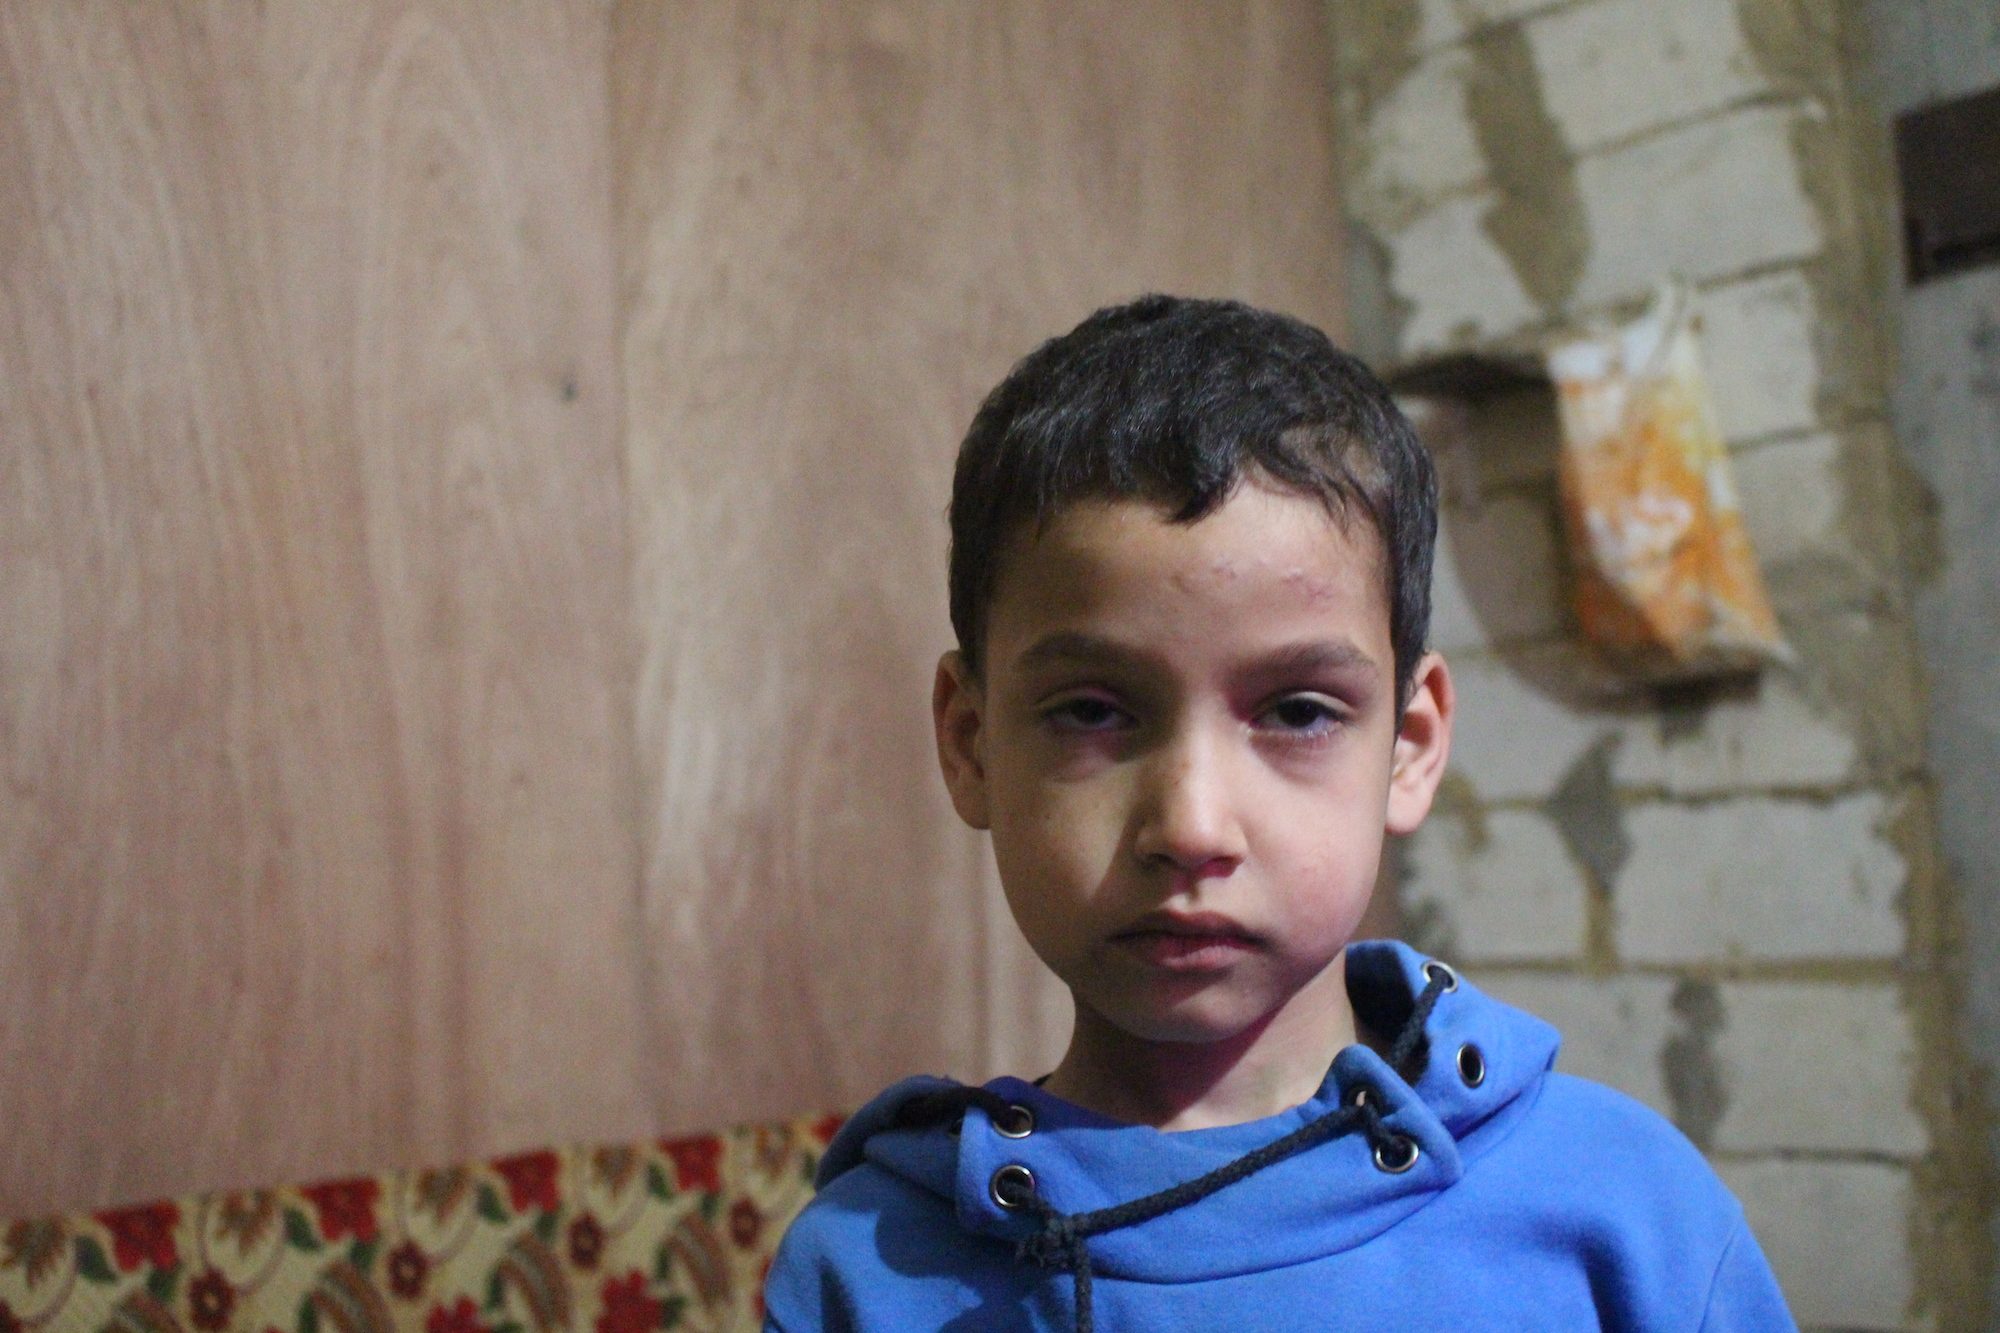 Mohammed, 7, a Syrian refugee from Homs now in Lebanon, was injured when the ceiling of the underground car park his family are staying collapsed